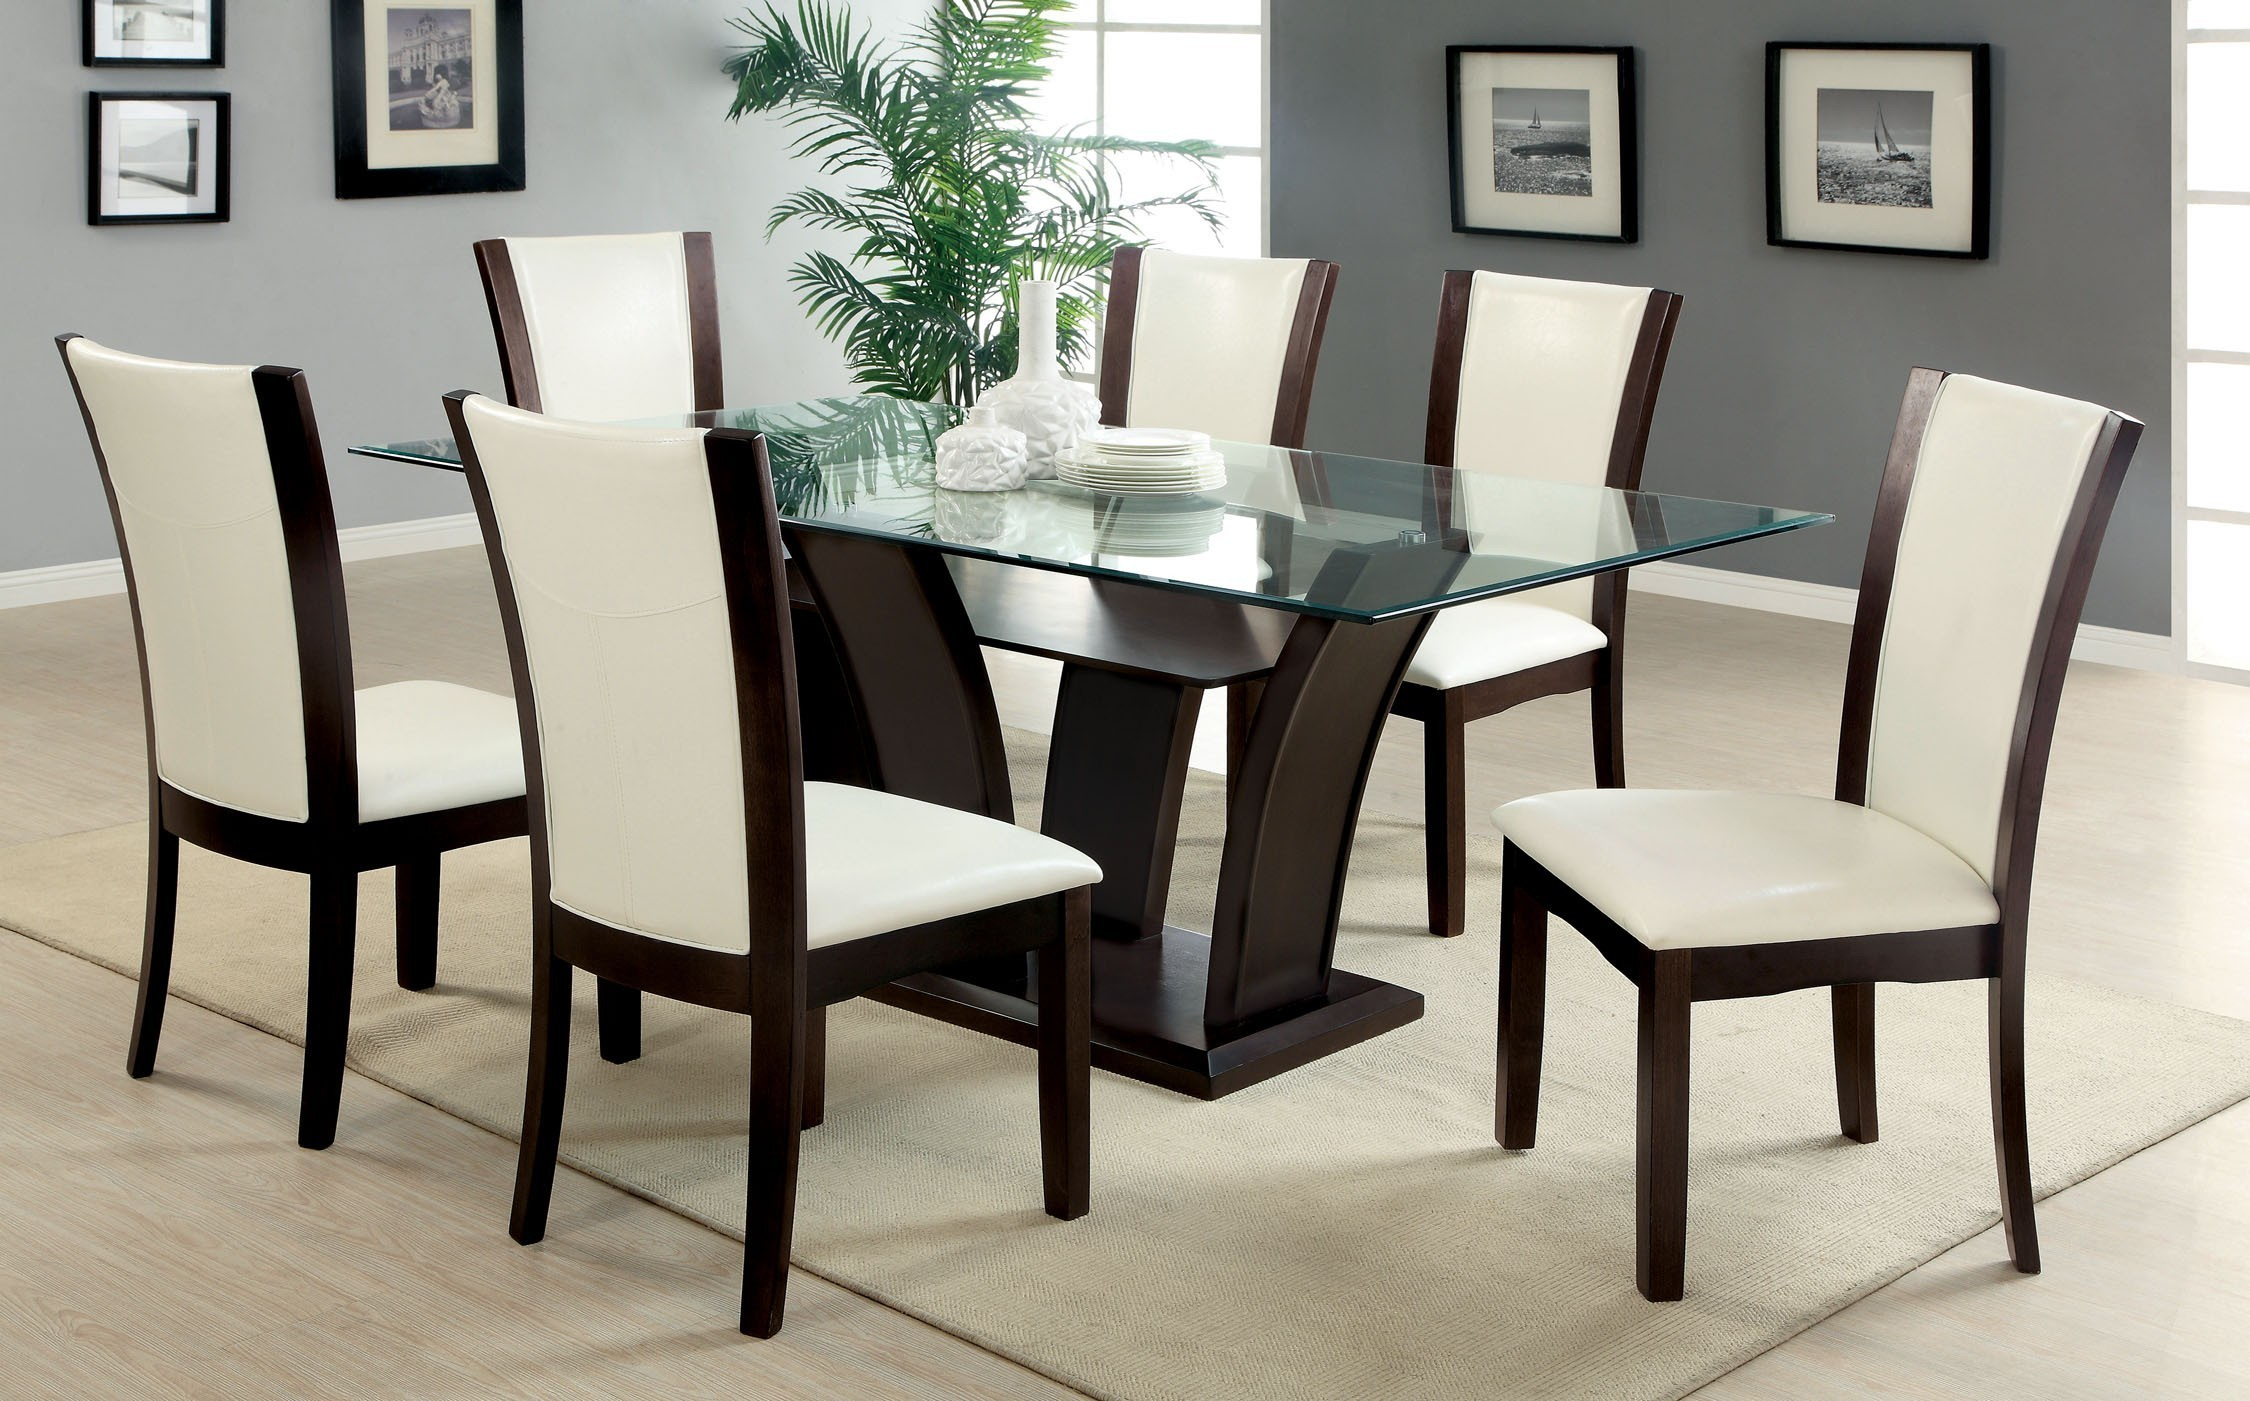 Kmart Dining Table Sets | Top Home Information